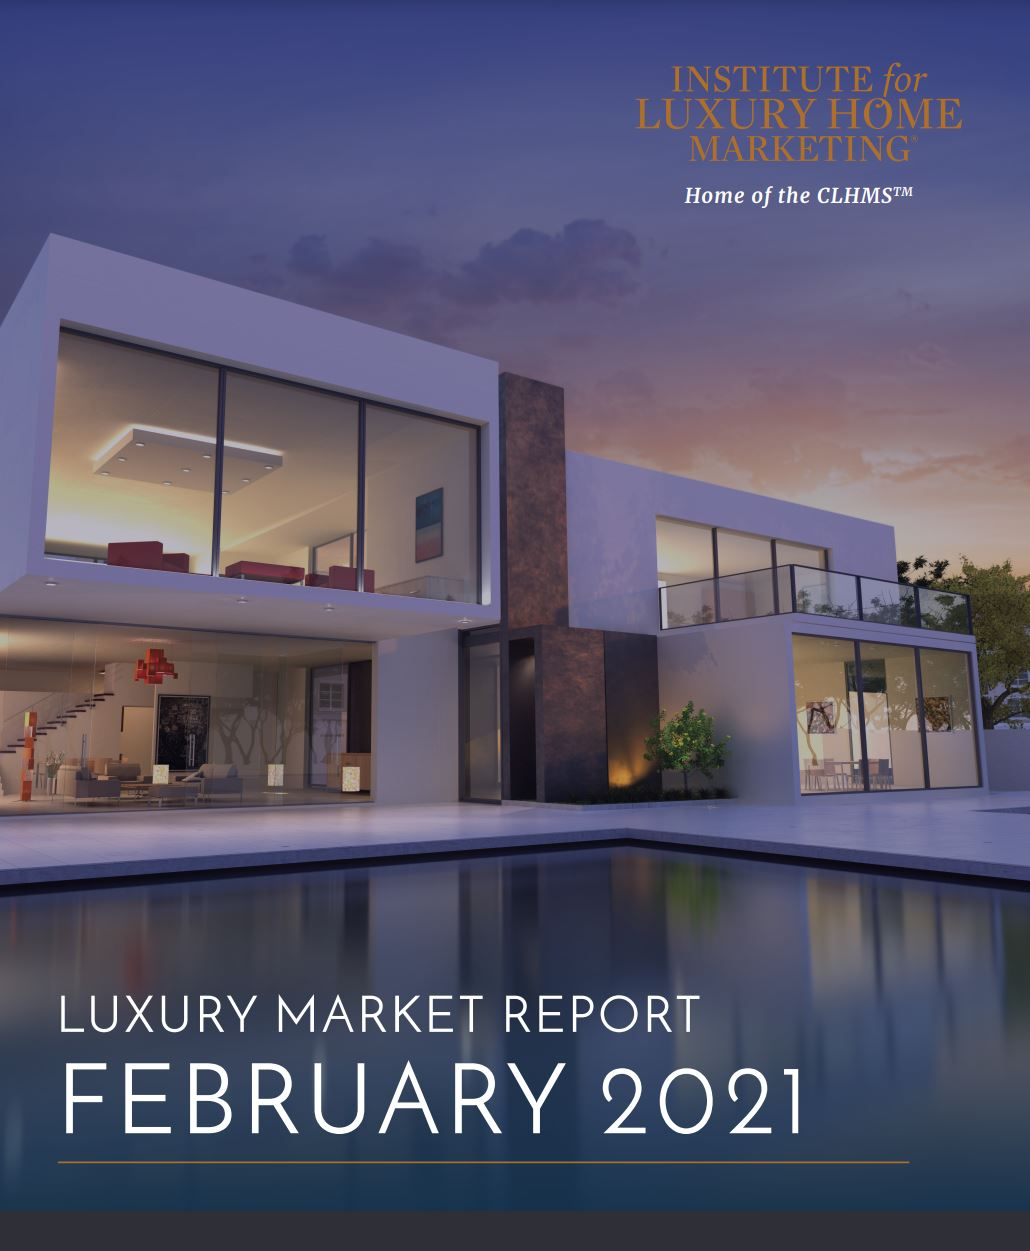 ILHM Institute for Luxury Home Marketing - CLHMS Certified Luxury Home Marketing Specialist 2021 02 26 February Luxury Home Market Report for North America Hoey Team exp Realty